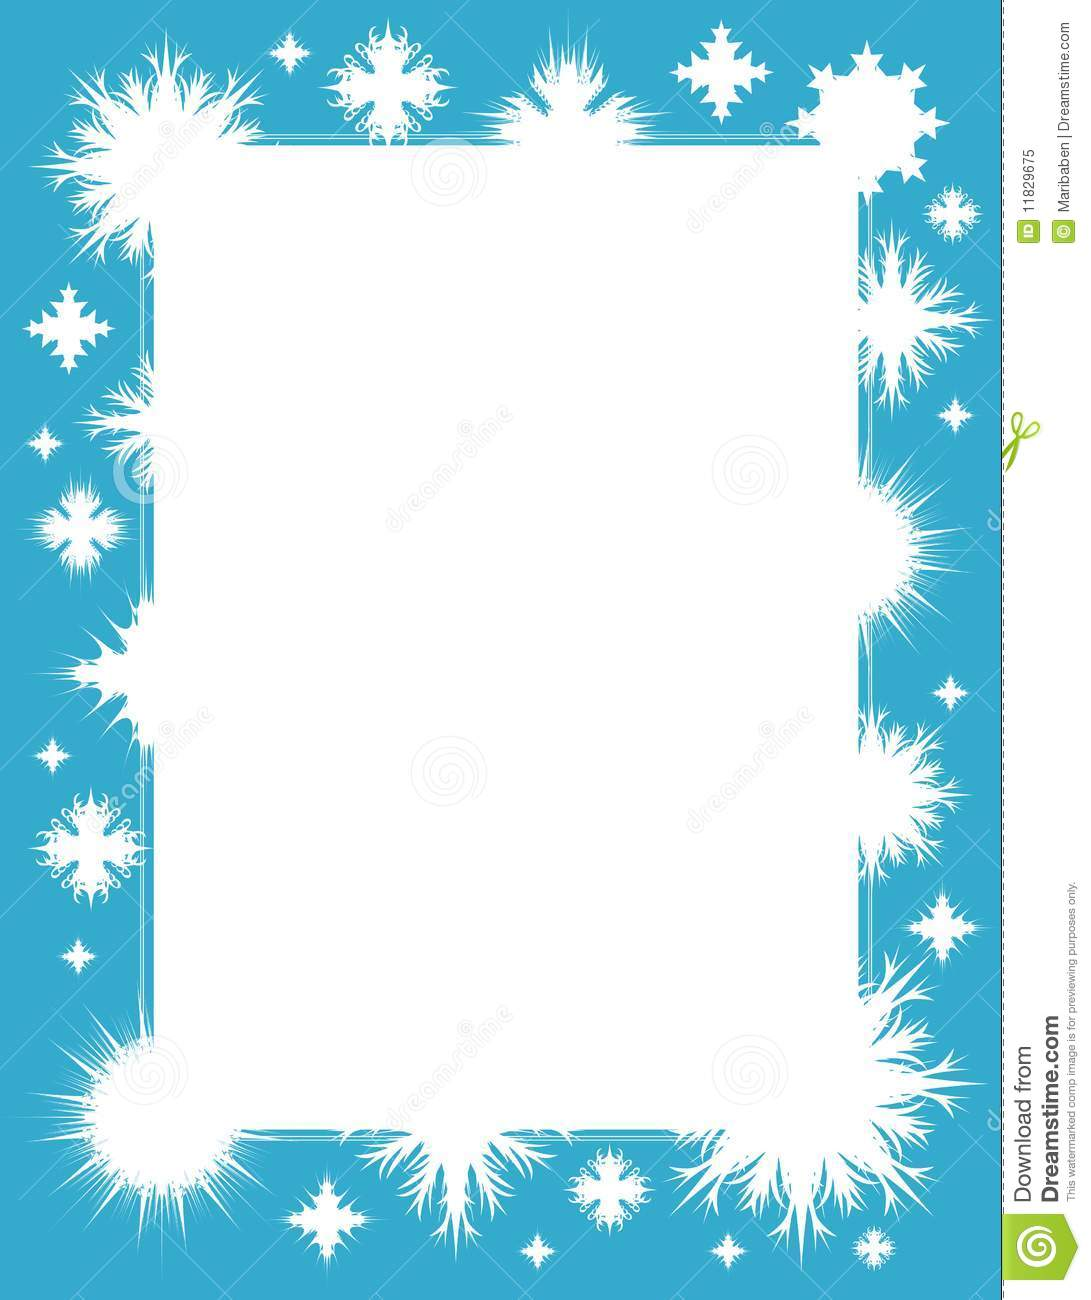 Winter Frame With Snowflakes Royalty Free Stock Photo Image 11829675